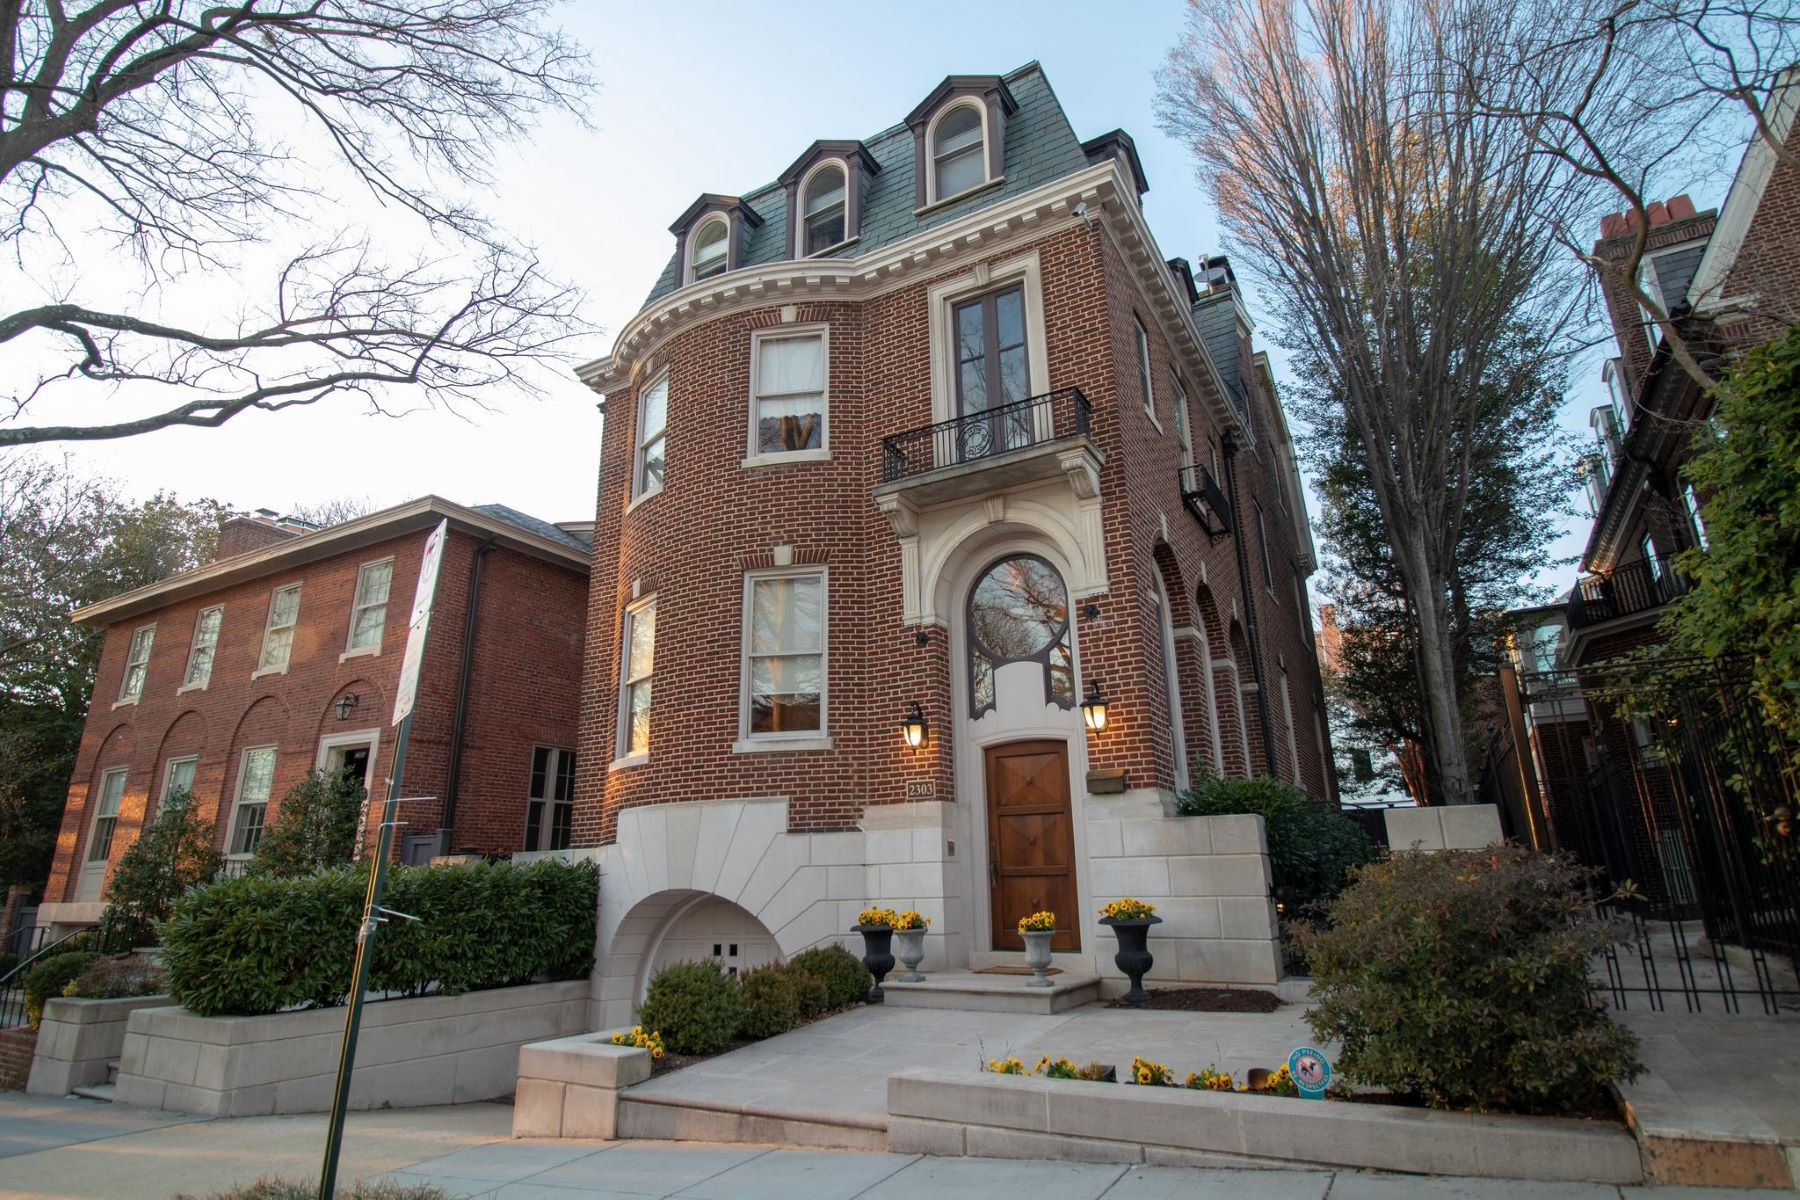 Single Family Homes for Sale at 2303 Bancroft Pl Nw Washington, District Of Columbia 20008 United States